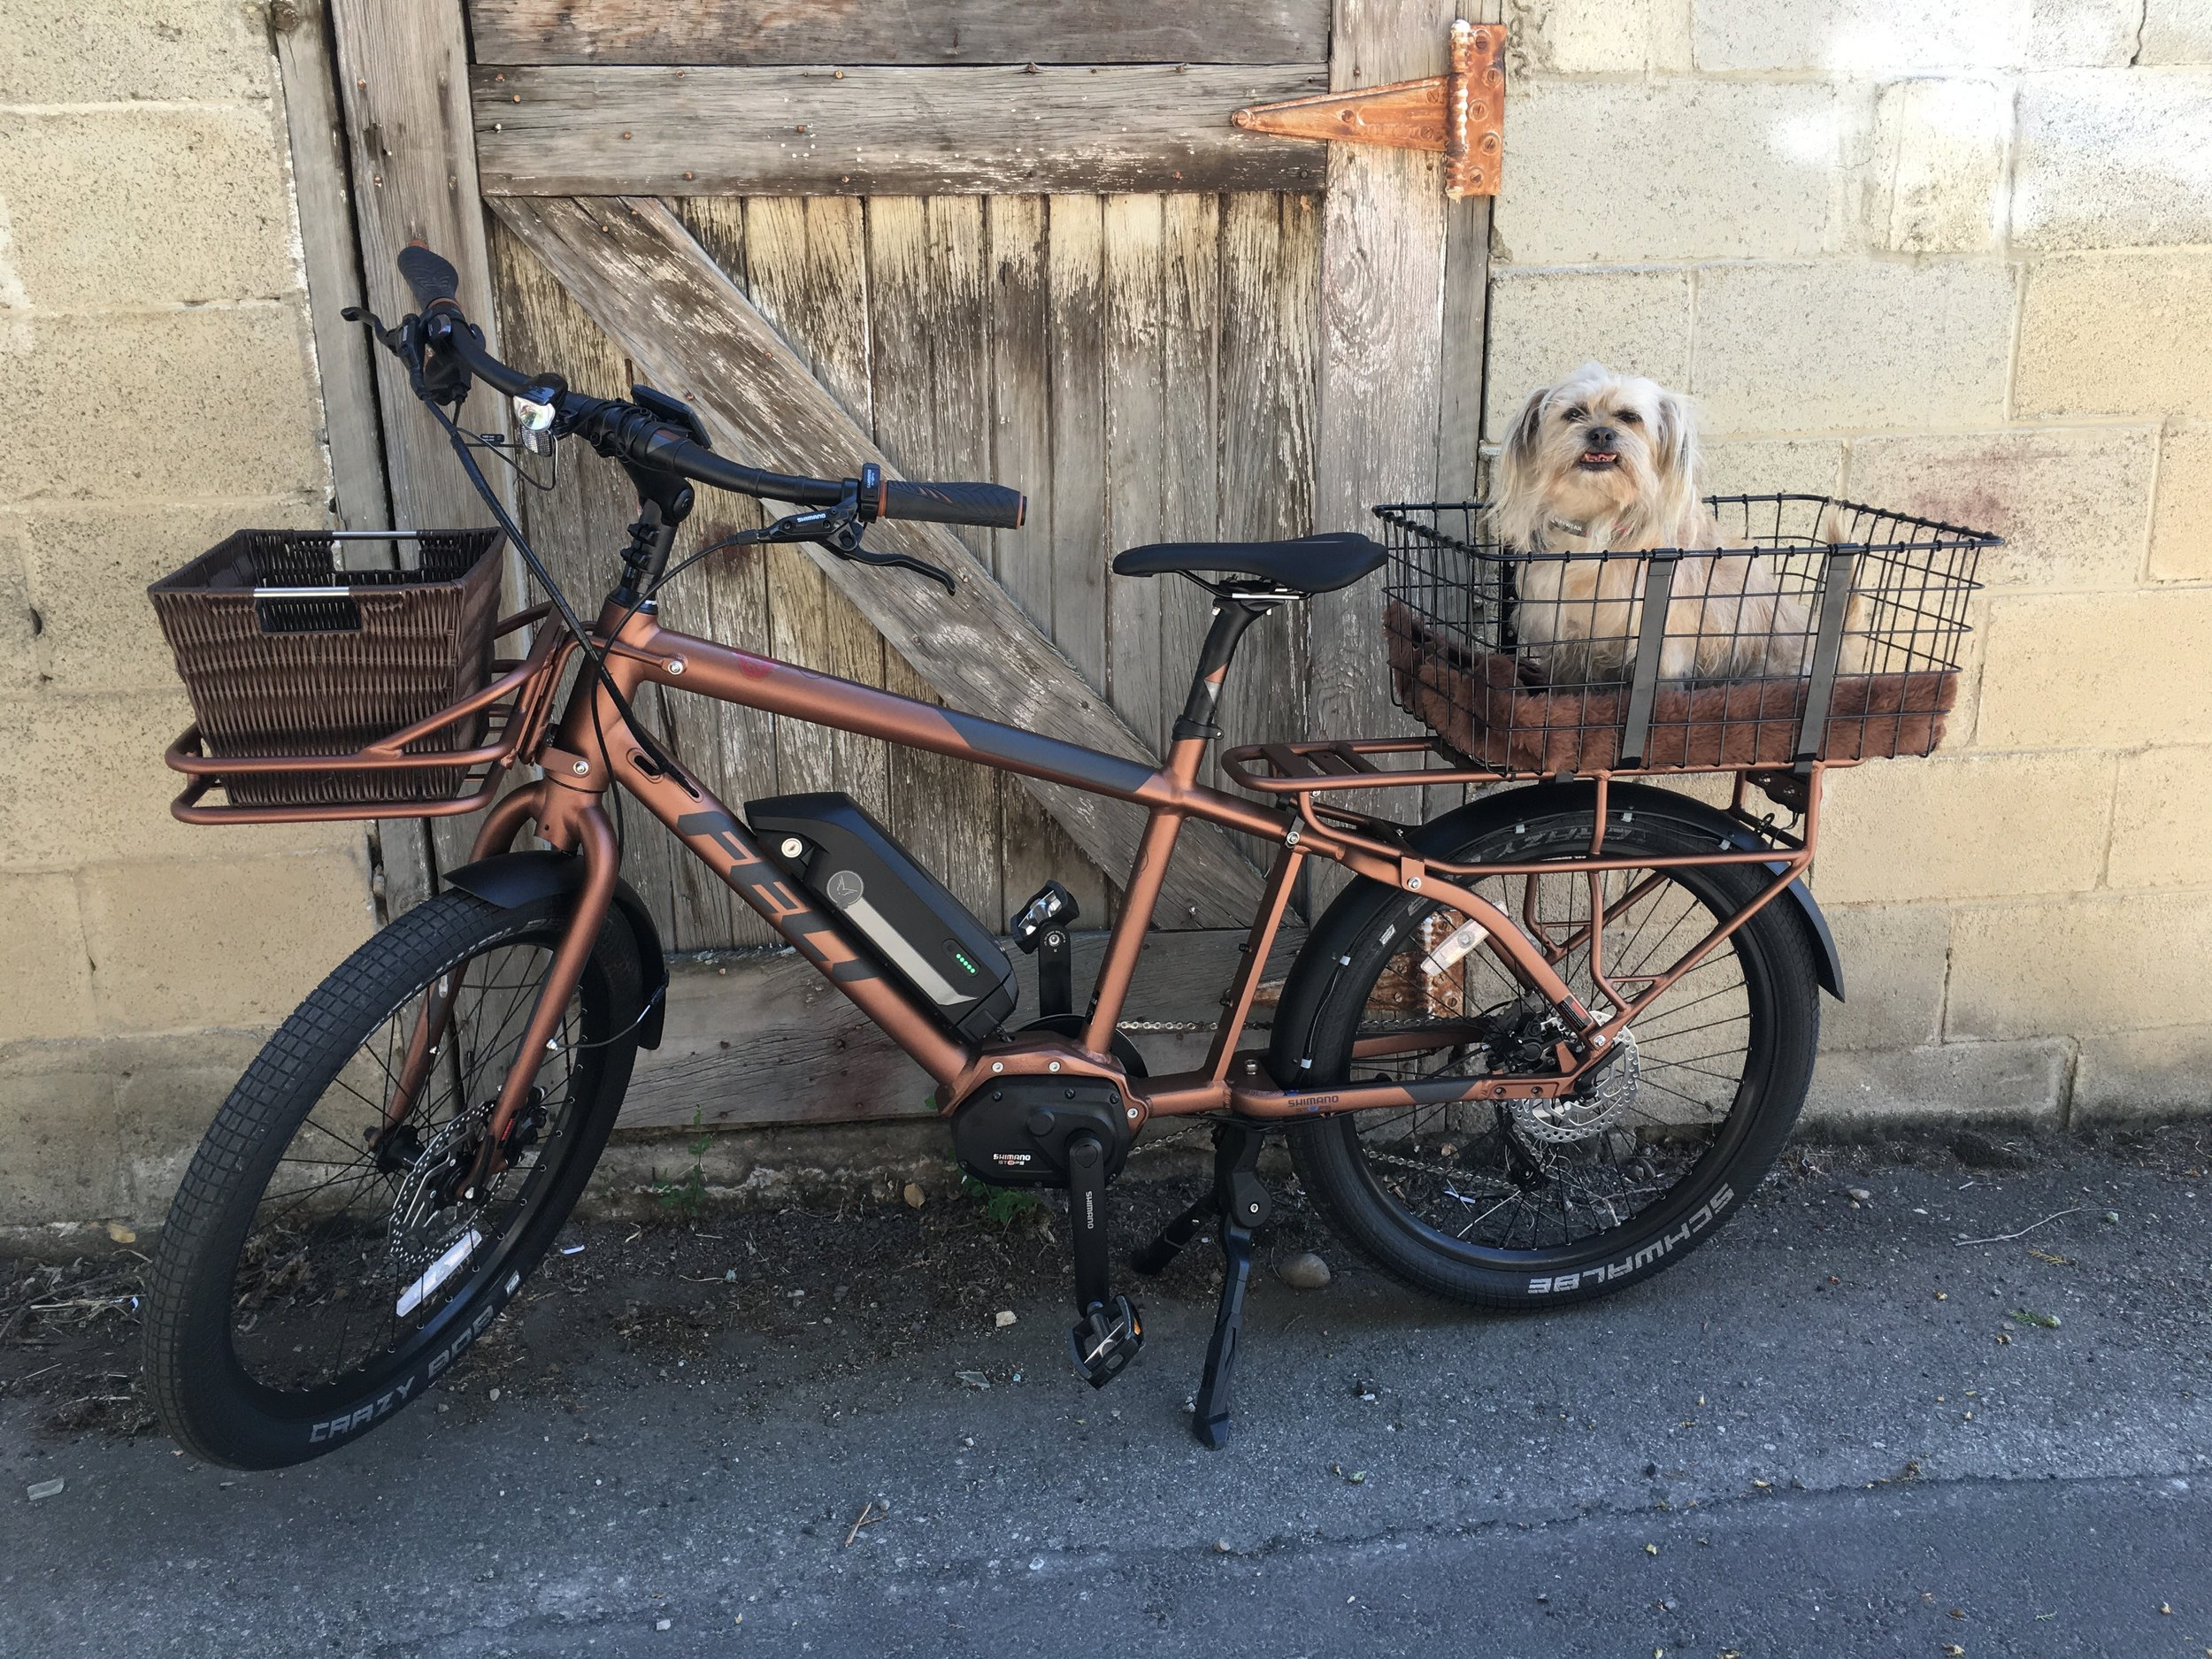 Cargo e-bikes - Whether transporting kids to school or picking up a load of groceries, cargo bikes are the ultimate car replacement. With an e-cargo bike, hauling whatever it is that you need to haul becomes a joy, especially if you need to go up hill.